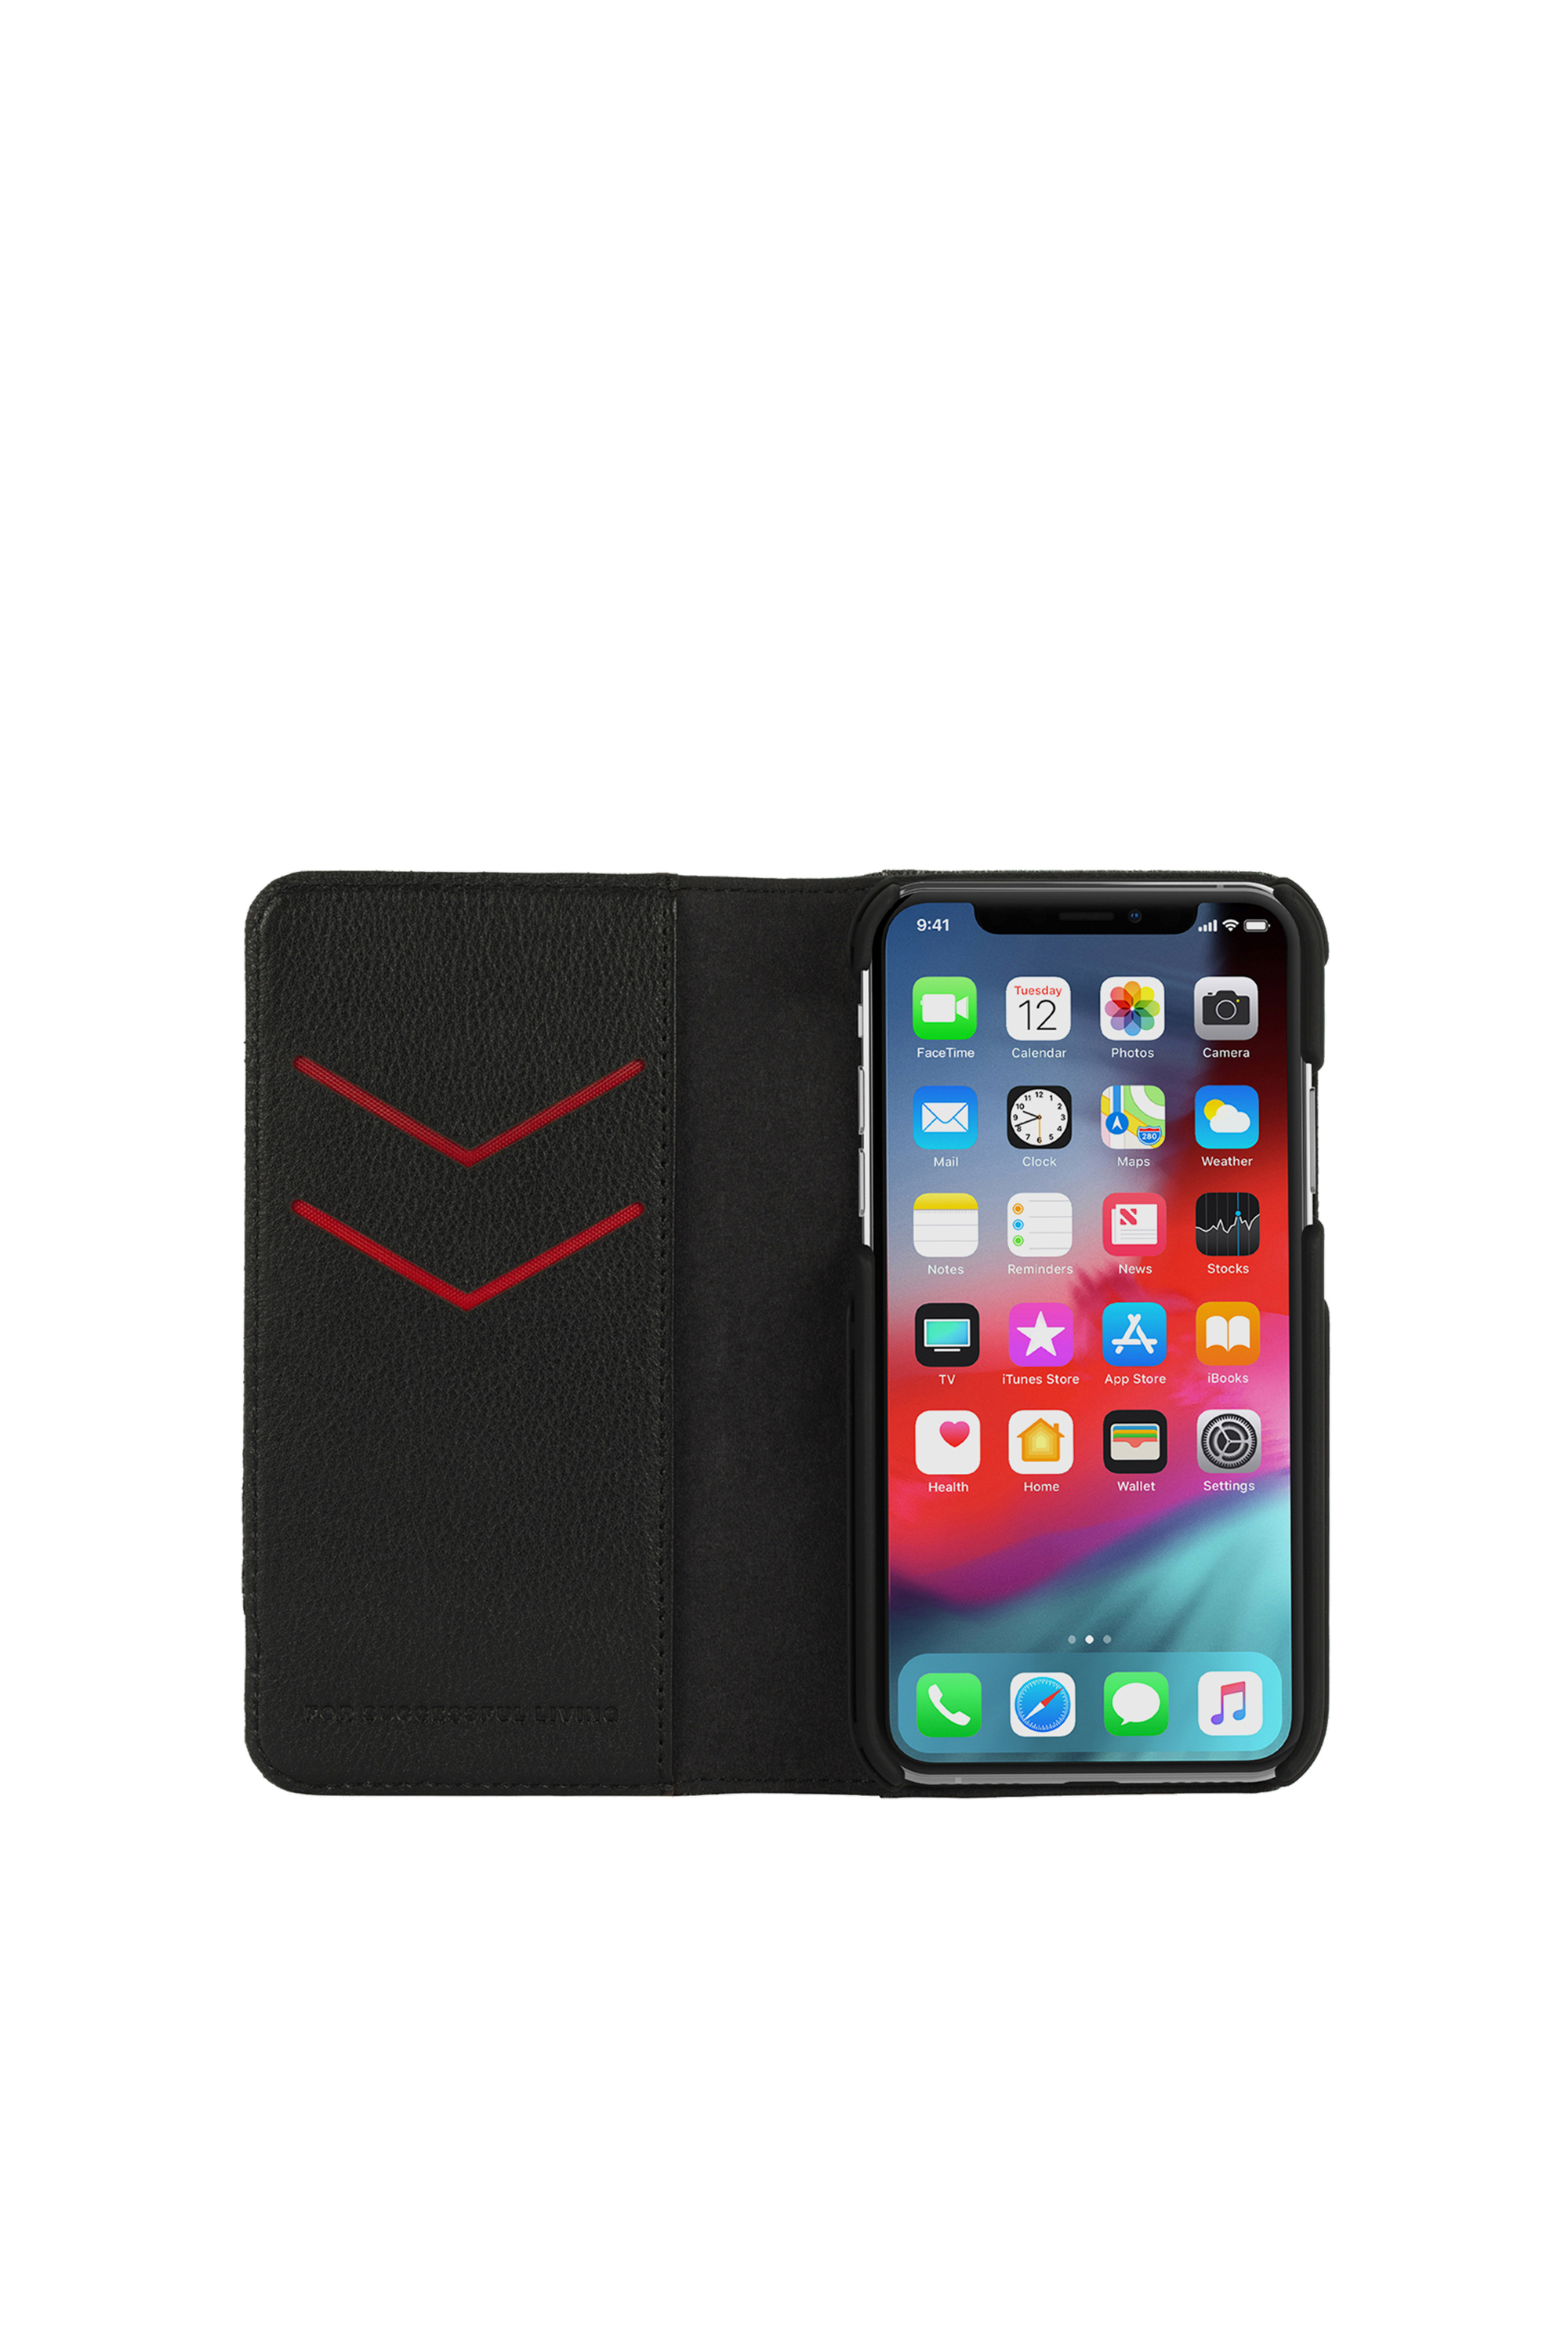 Diesel - DIESEL 2-IN-1 FOLIO CASE FOR IPHONE XS & IPHONE X,  - Flip covers - Image 6